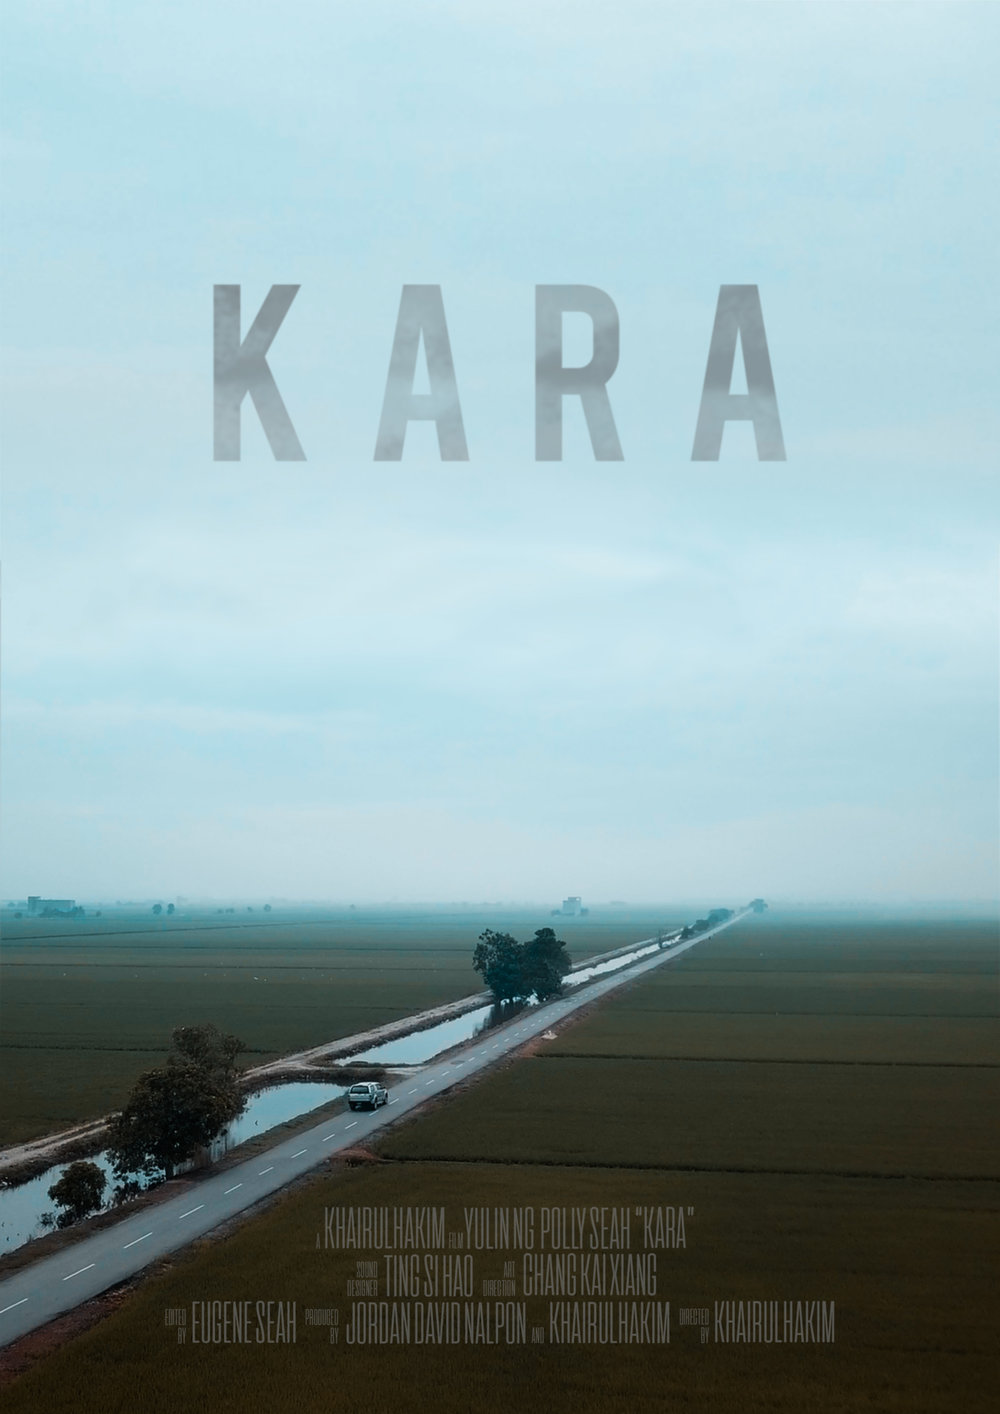 KARA synopsis: Trying to move on from a troubled past, June attempts to escape her current life with her virtual phone assistant, Kara. The device brings June through a literal journey of recovery, until she discovers that Kara's intentions are not what it seems.